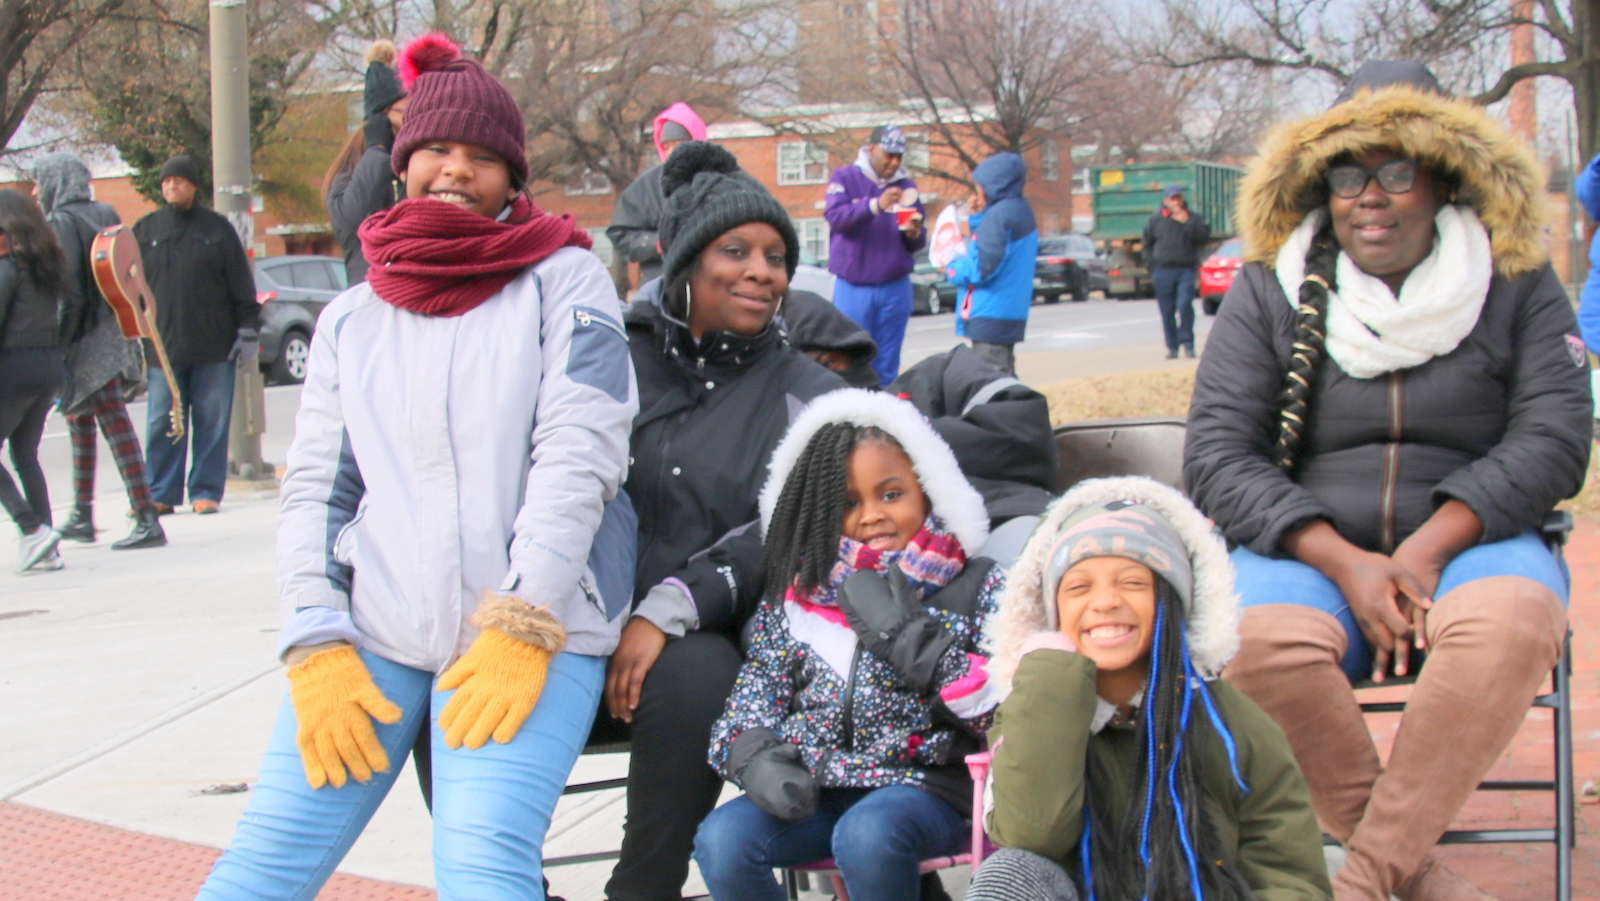 This group was bundled up against the cold.